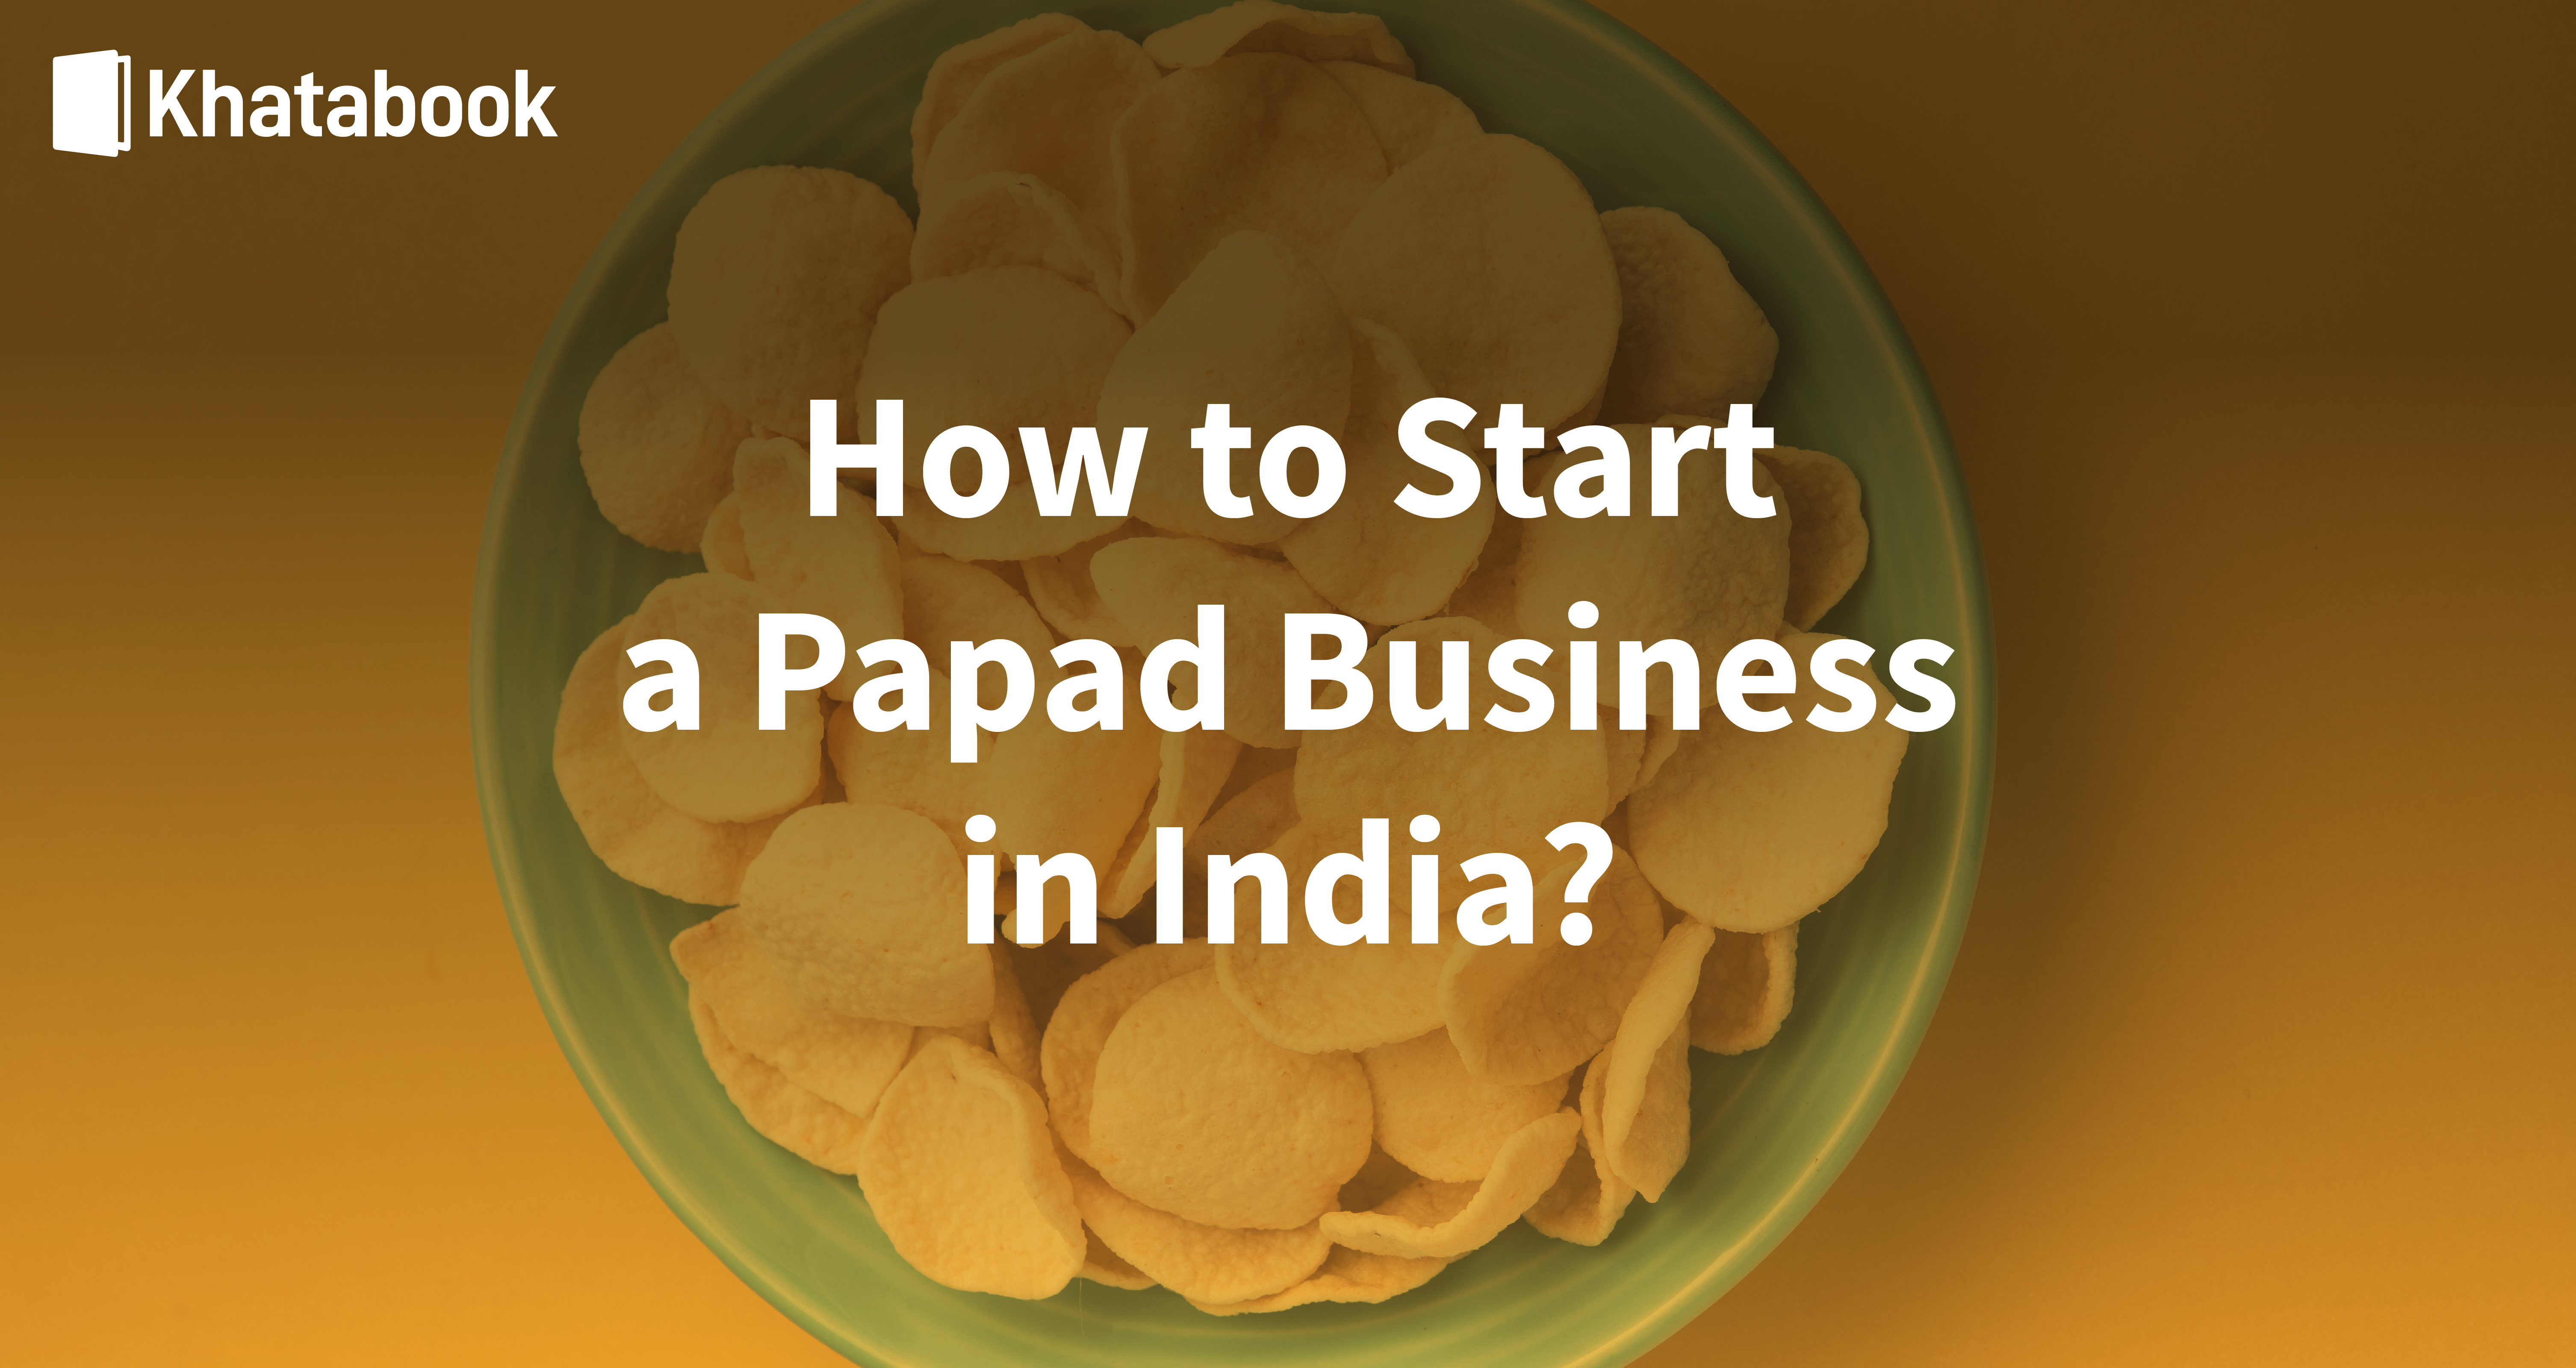 How To Start a Papad Business in India?